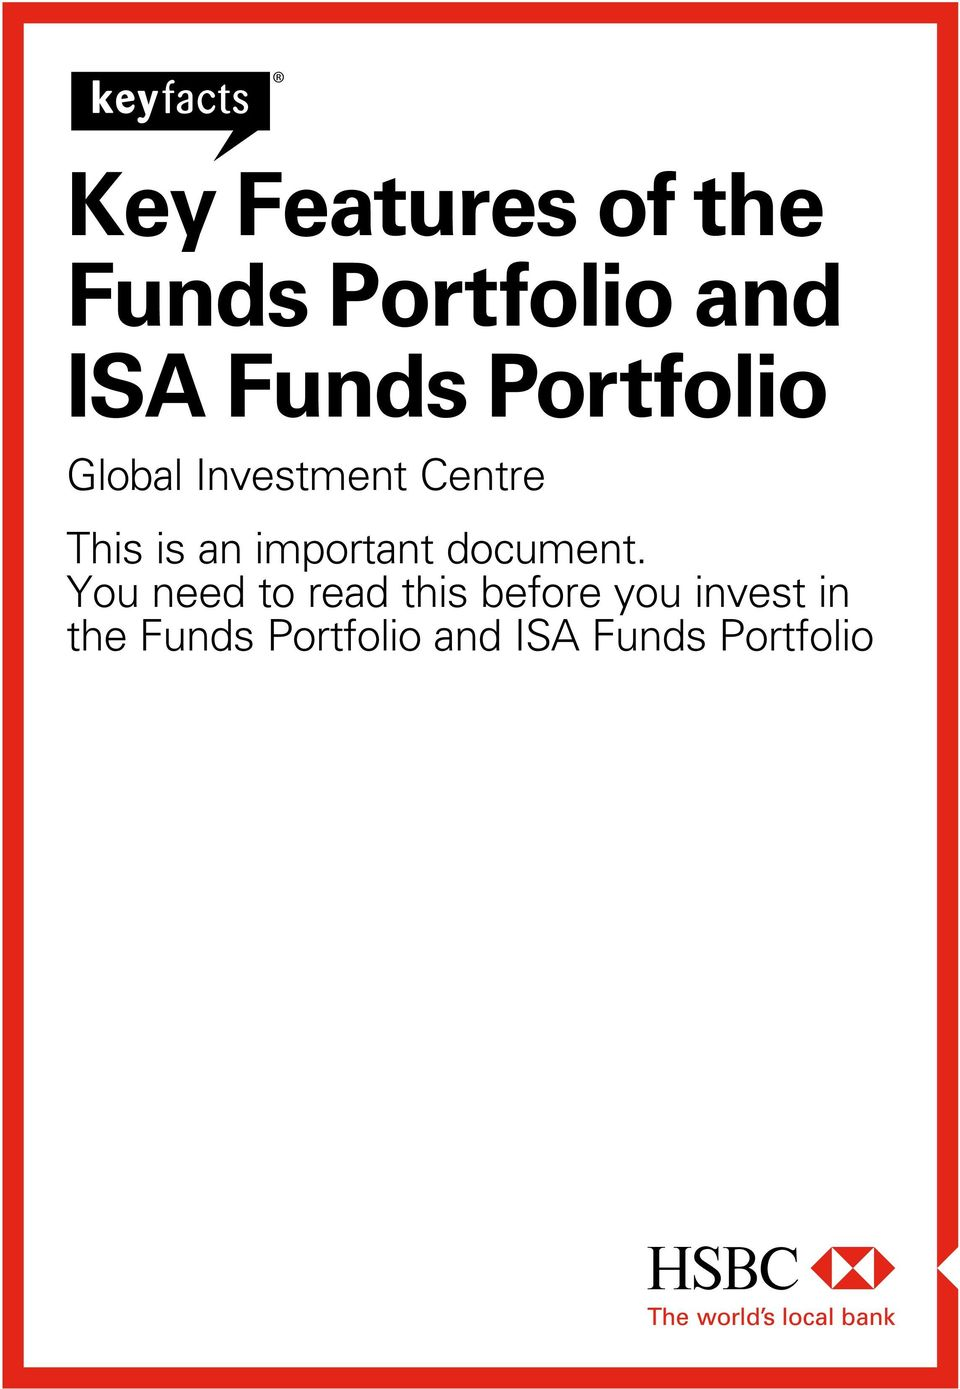 Key Features of the Funds Portfolio and ISA Funds Portfolio